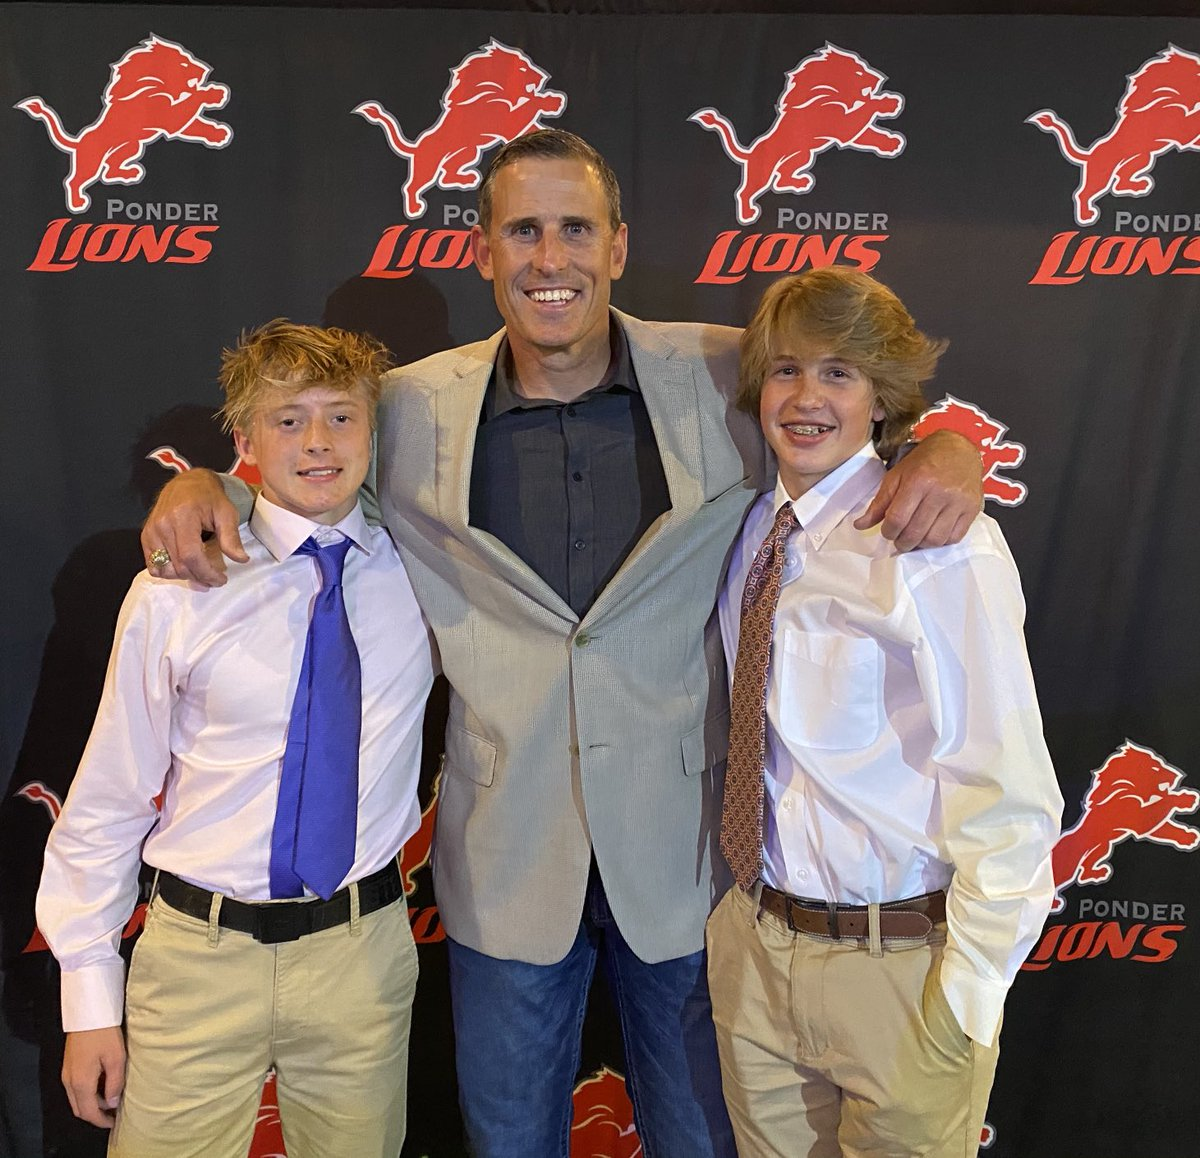 Great time at the Ponder Athletic Banquet. Thanks to all those who worked to put it on. Excited to be a part of this athletic department, school and community. https://t.co/3uDYHxkCnB